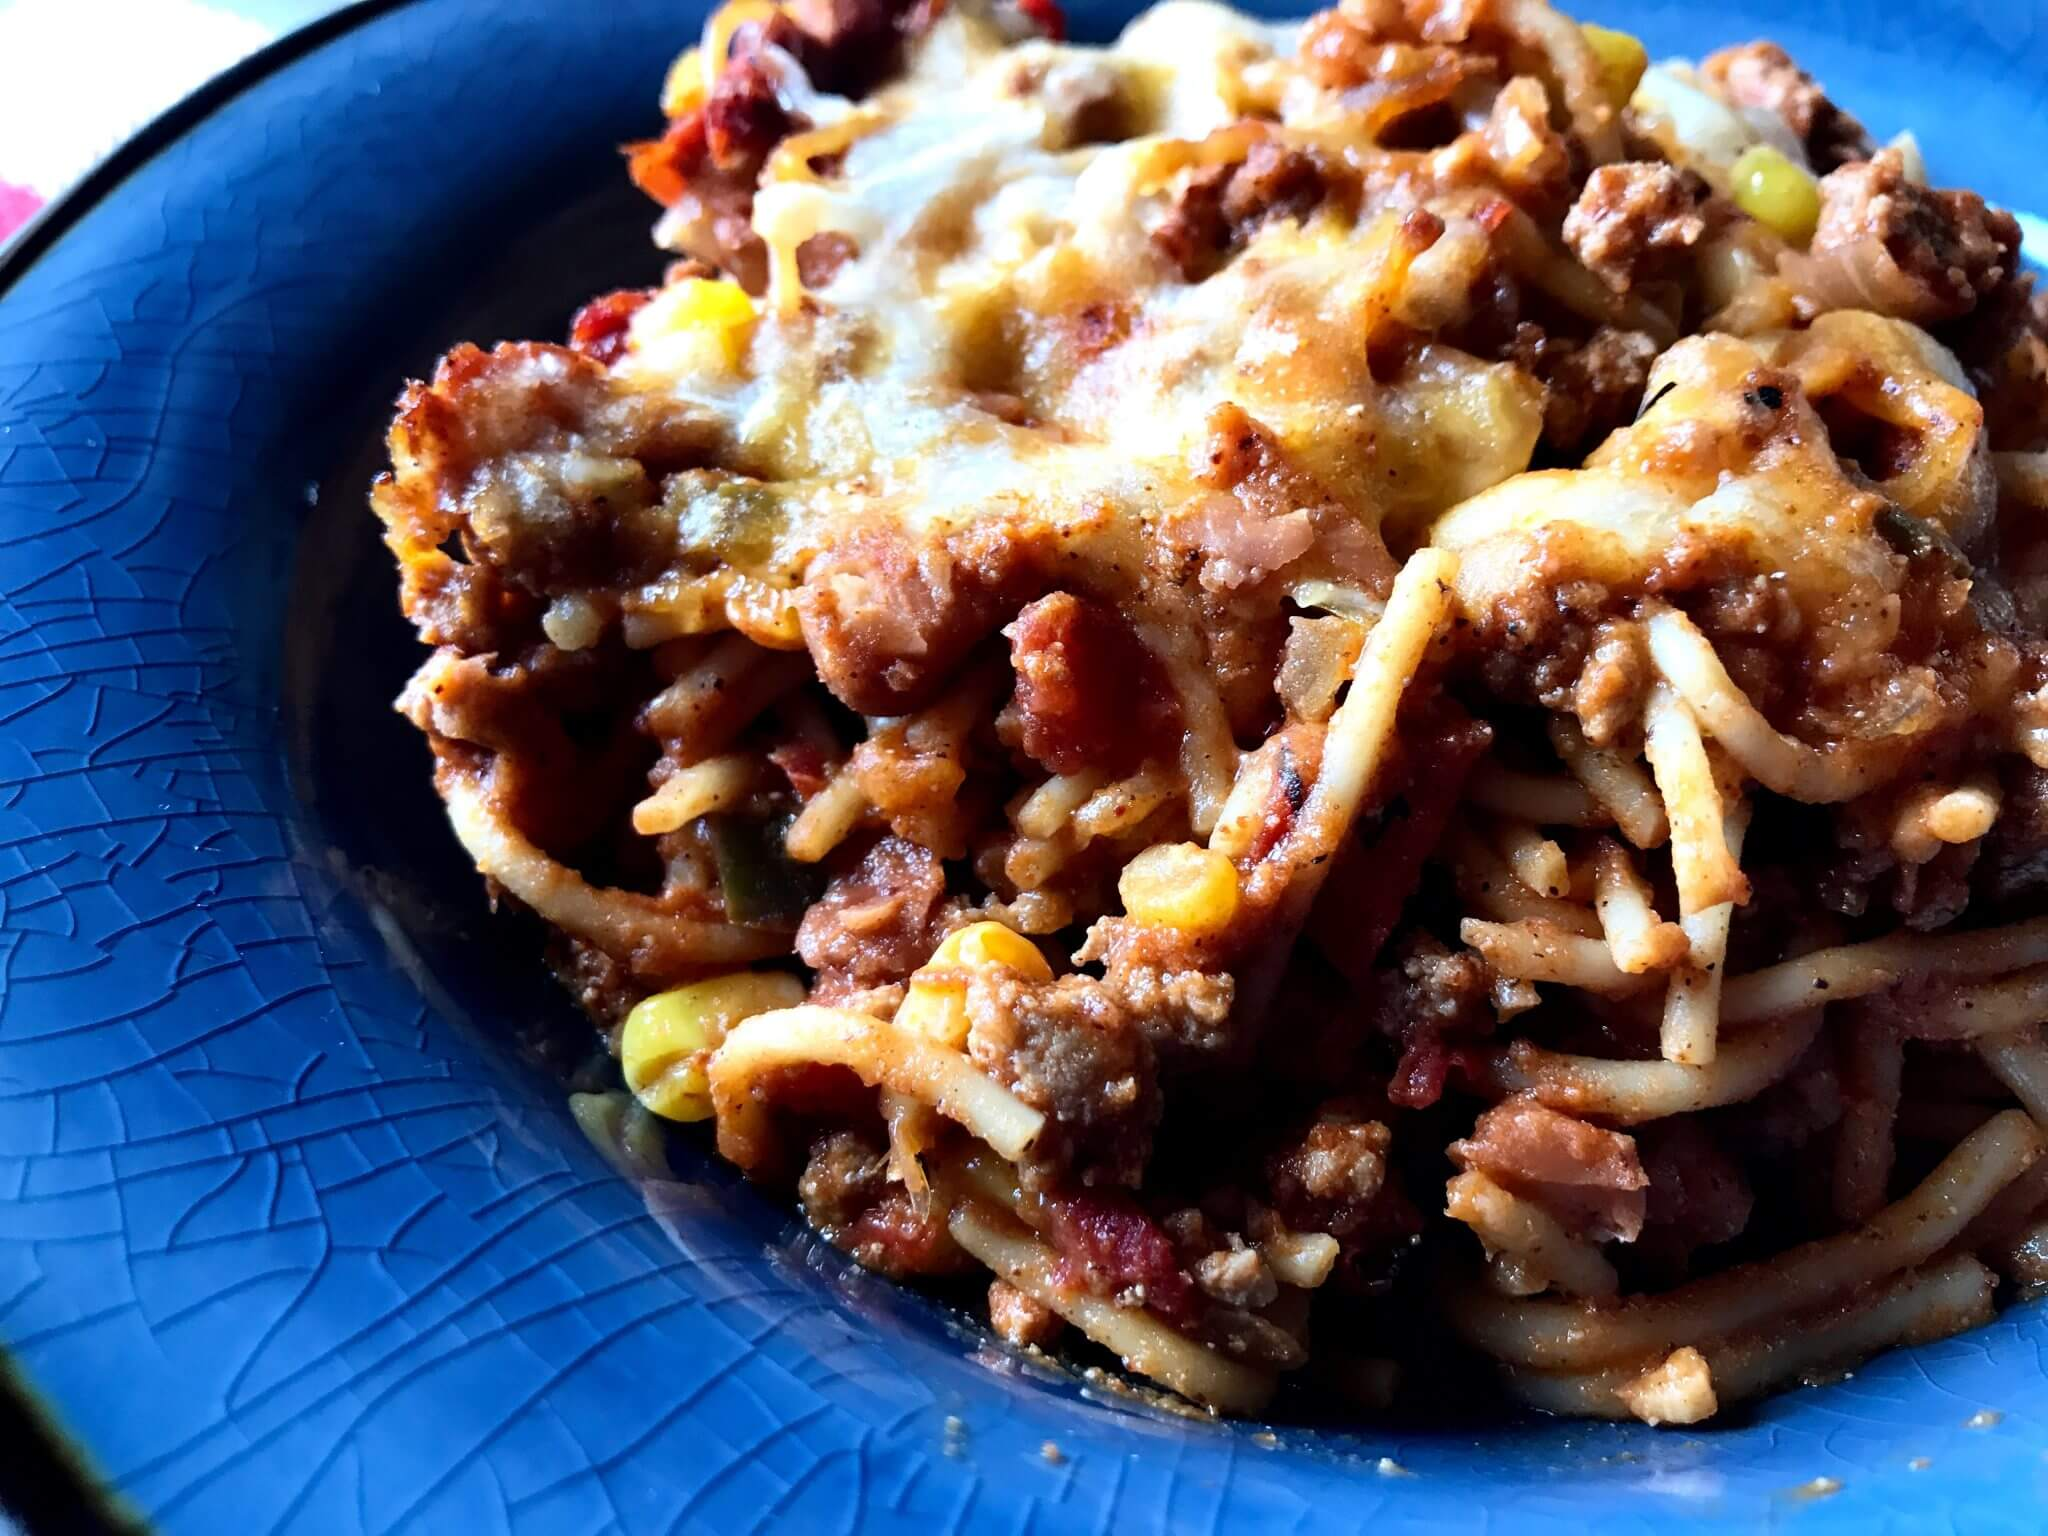 Chili Cheese Spaghetti Bake